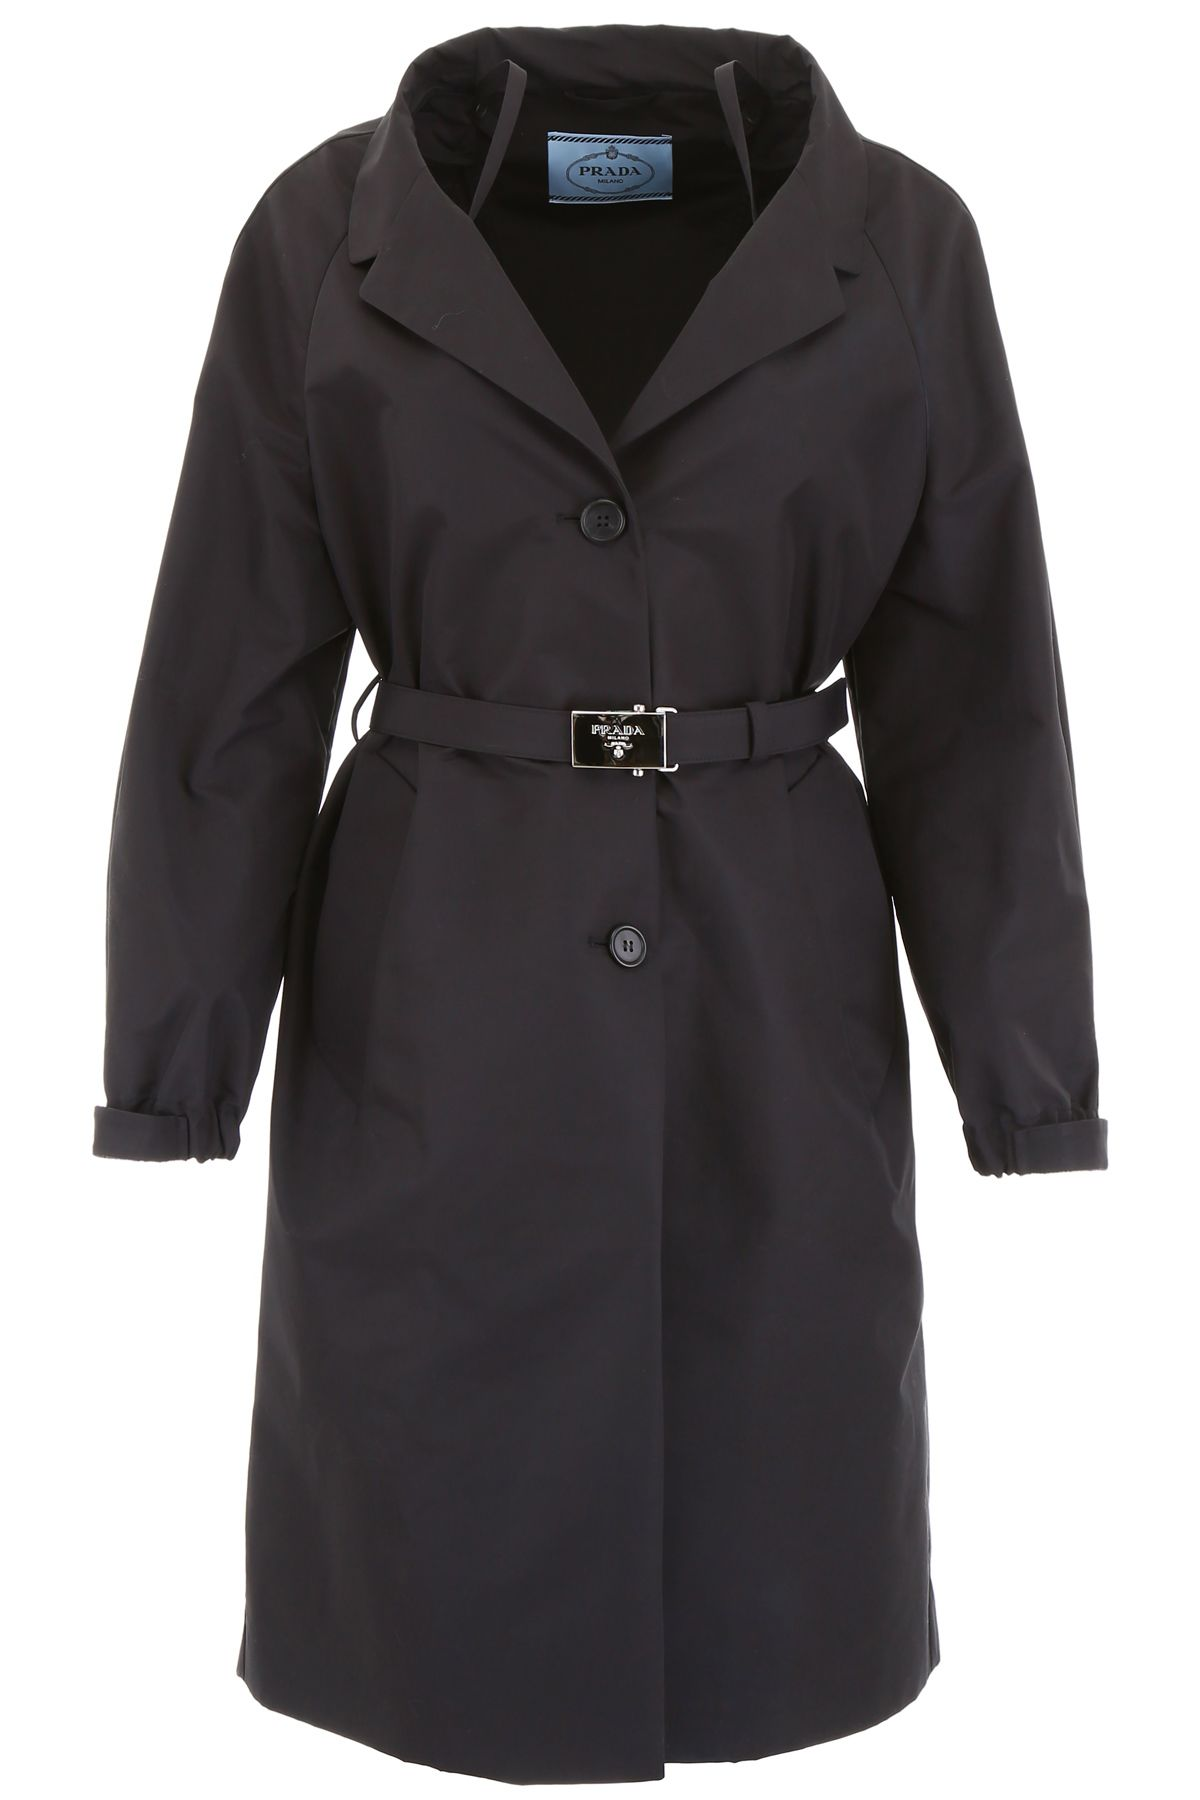 Prada Techno Cotton Raincoat